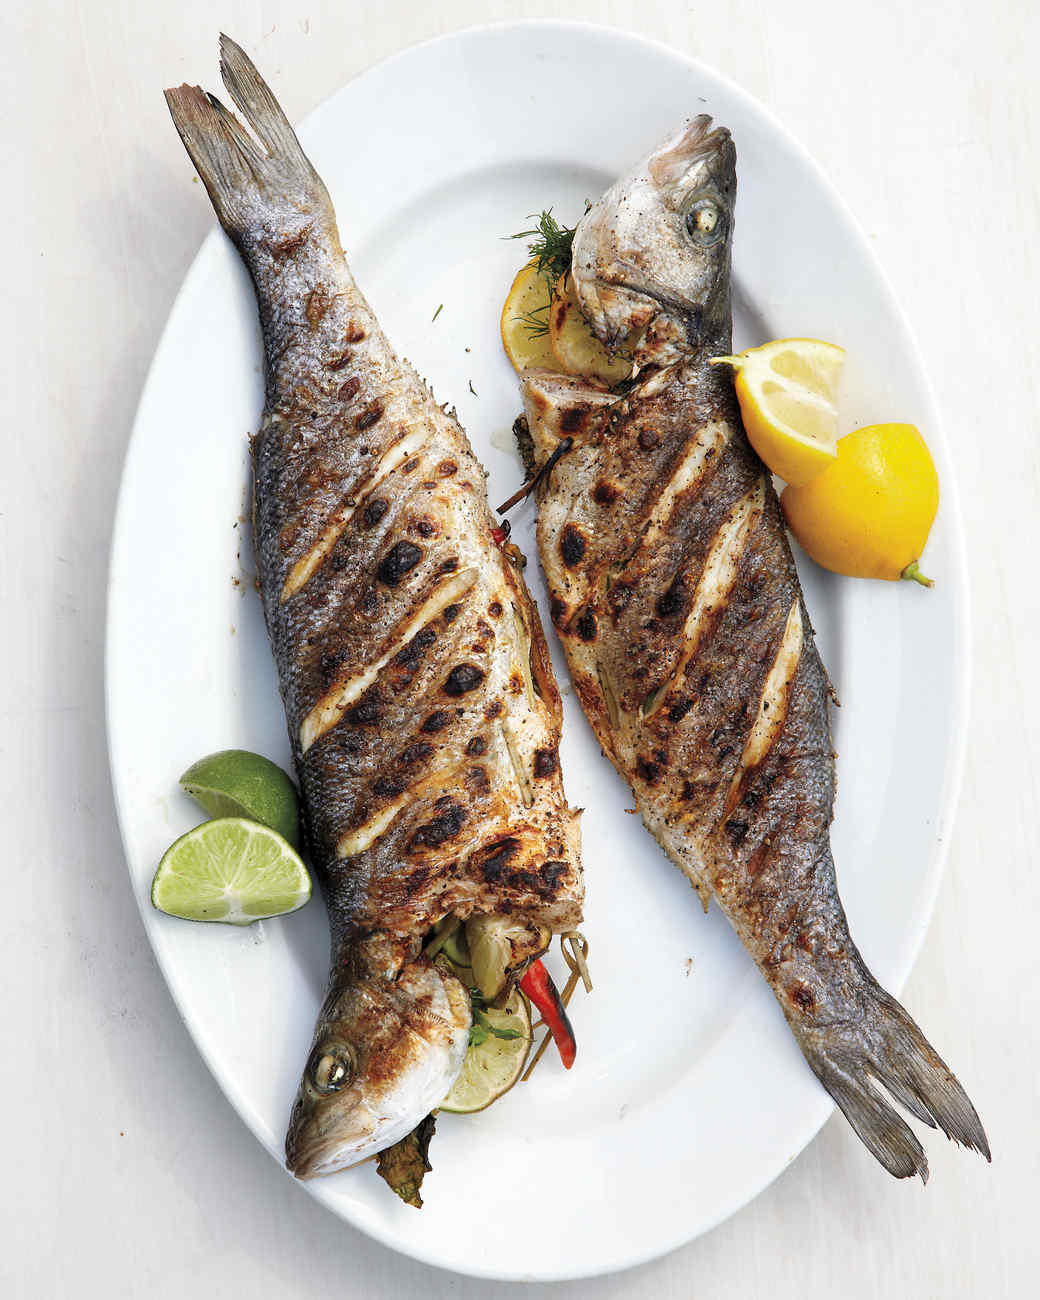 grilled-fish-8-mld110112.jpg